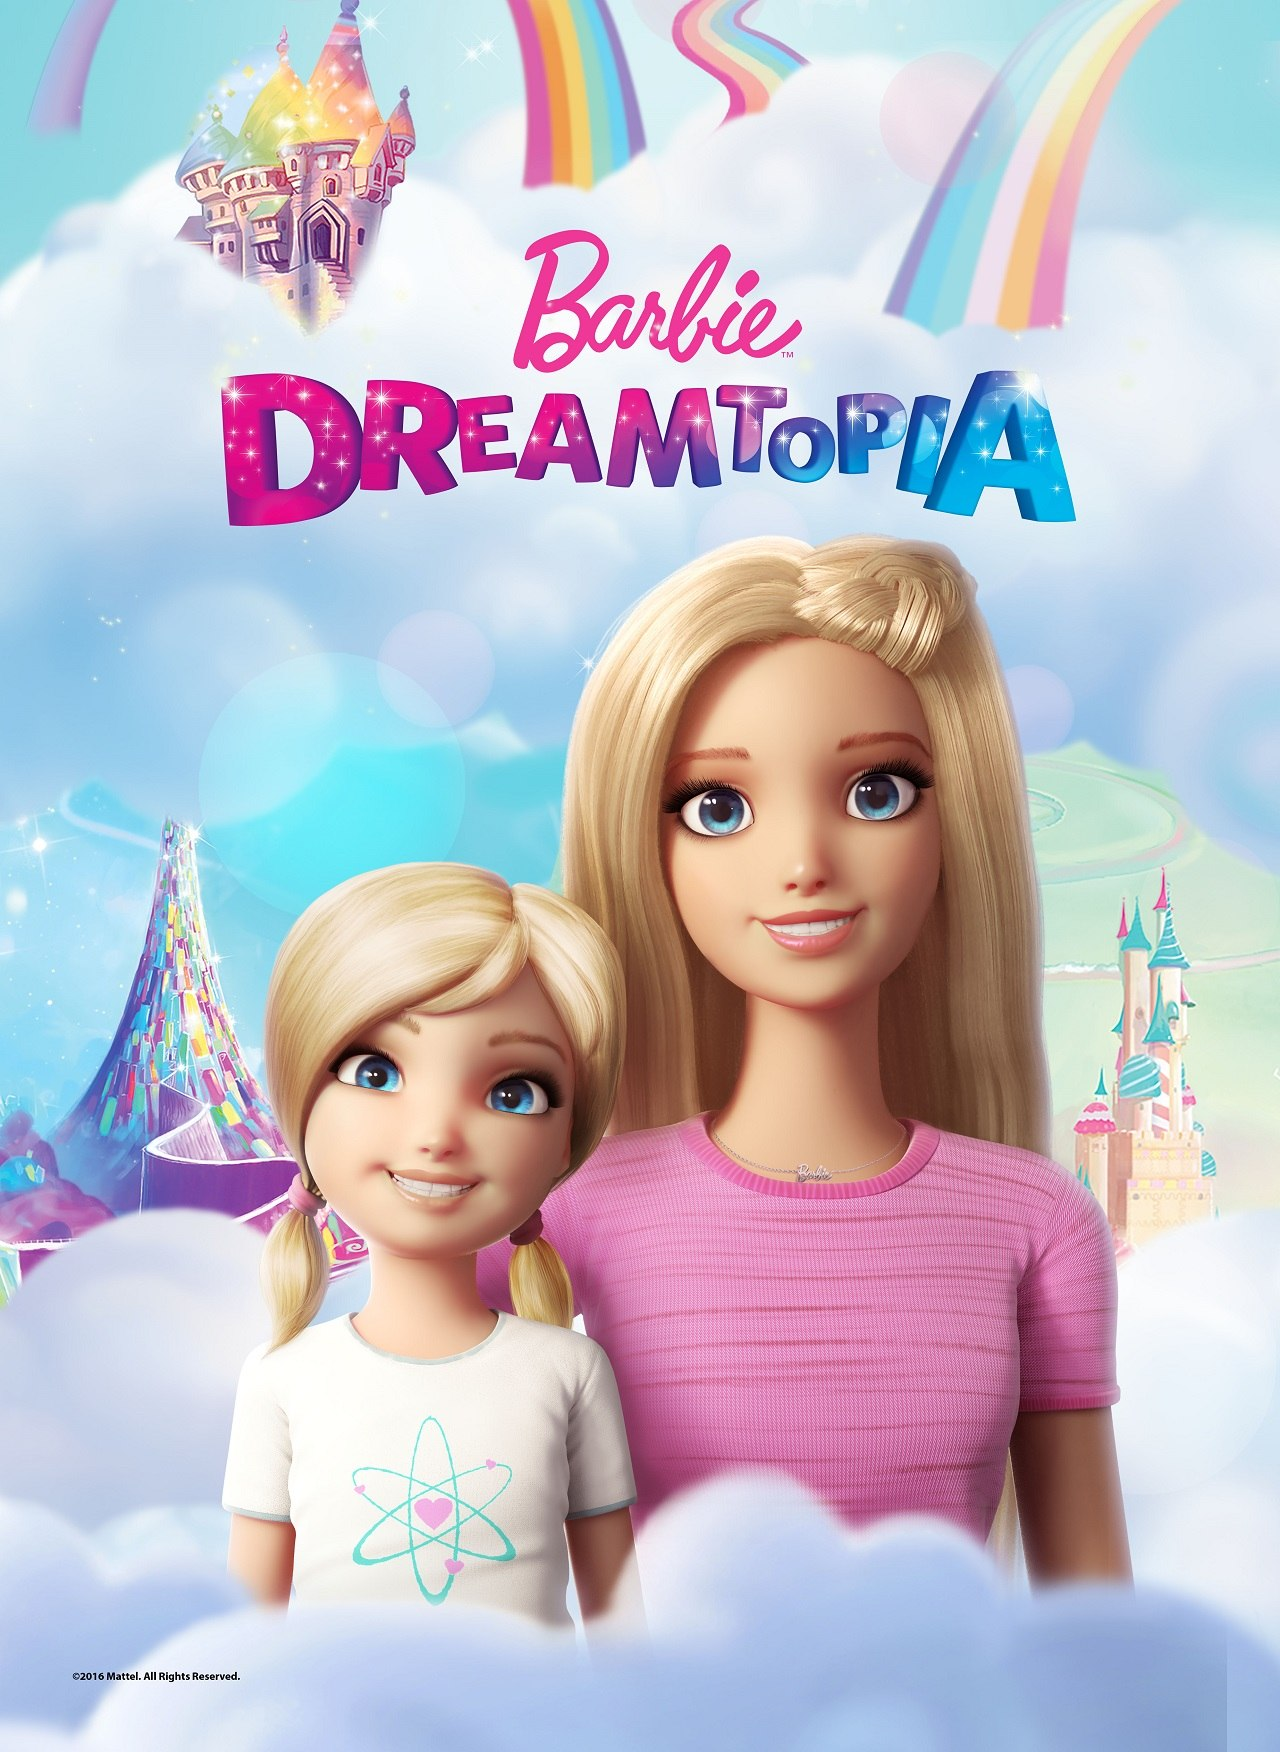 Uncategorized Barbie Animation mattel announces two new animated barbie series tv special dreamtopia 52 x 11 was greenlit following the huge success of 1 44 which has bee